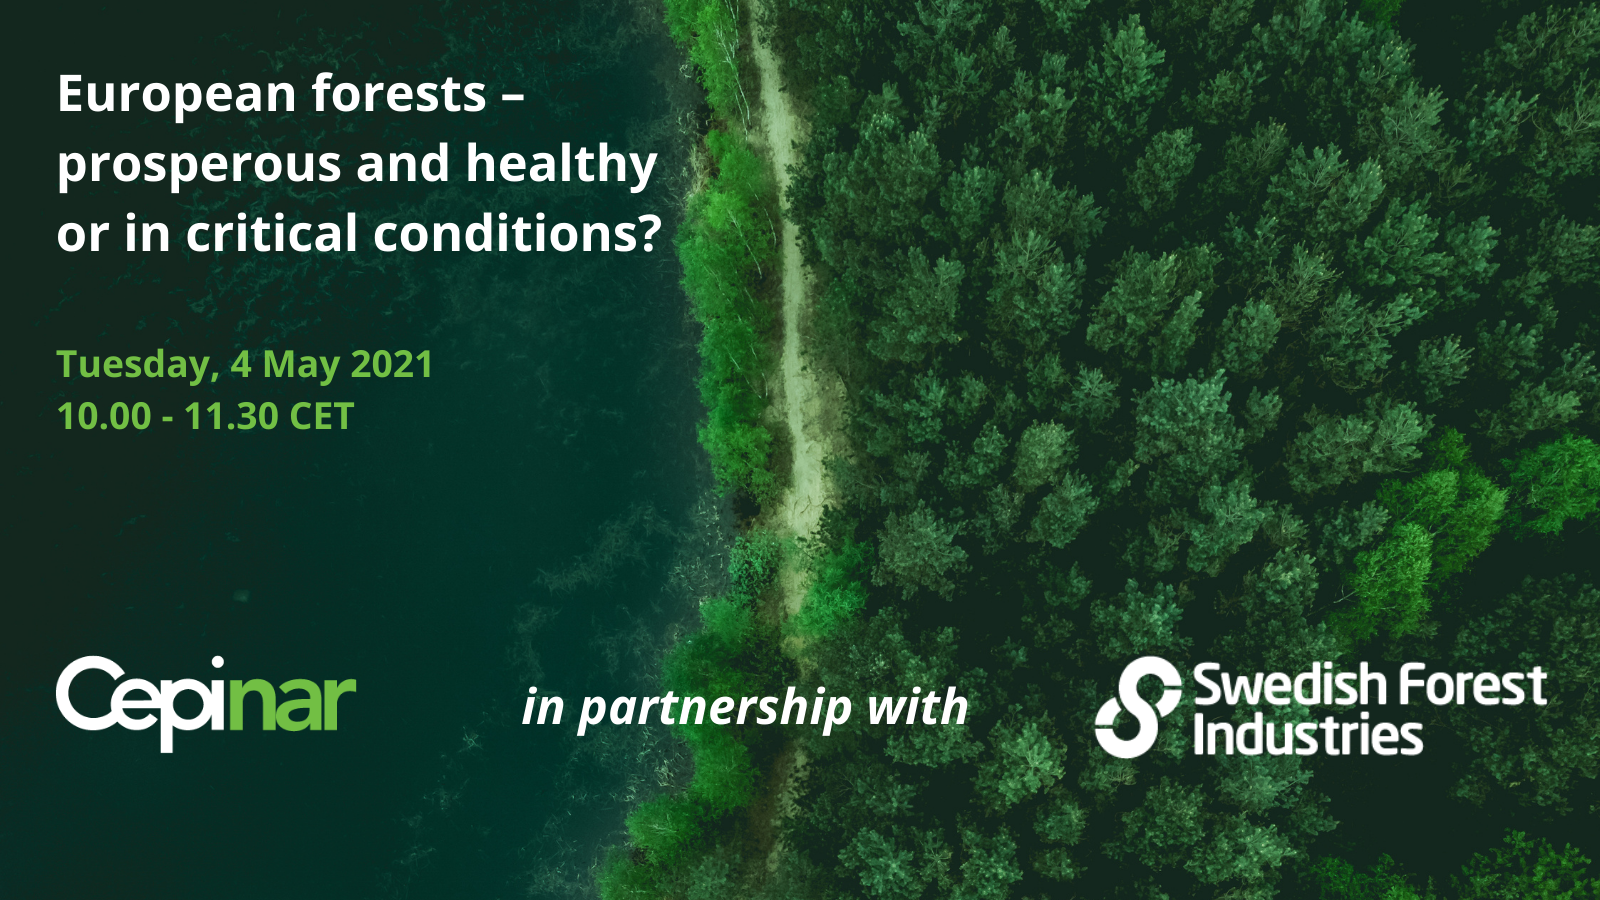 EVENT: European forests – prosperous and healthy or in critical conditions?